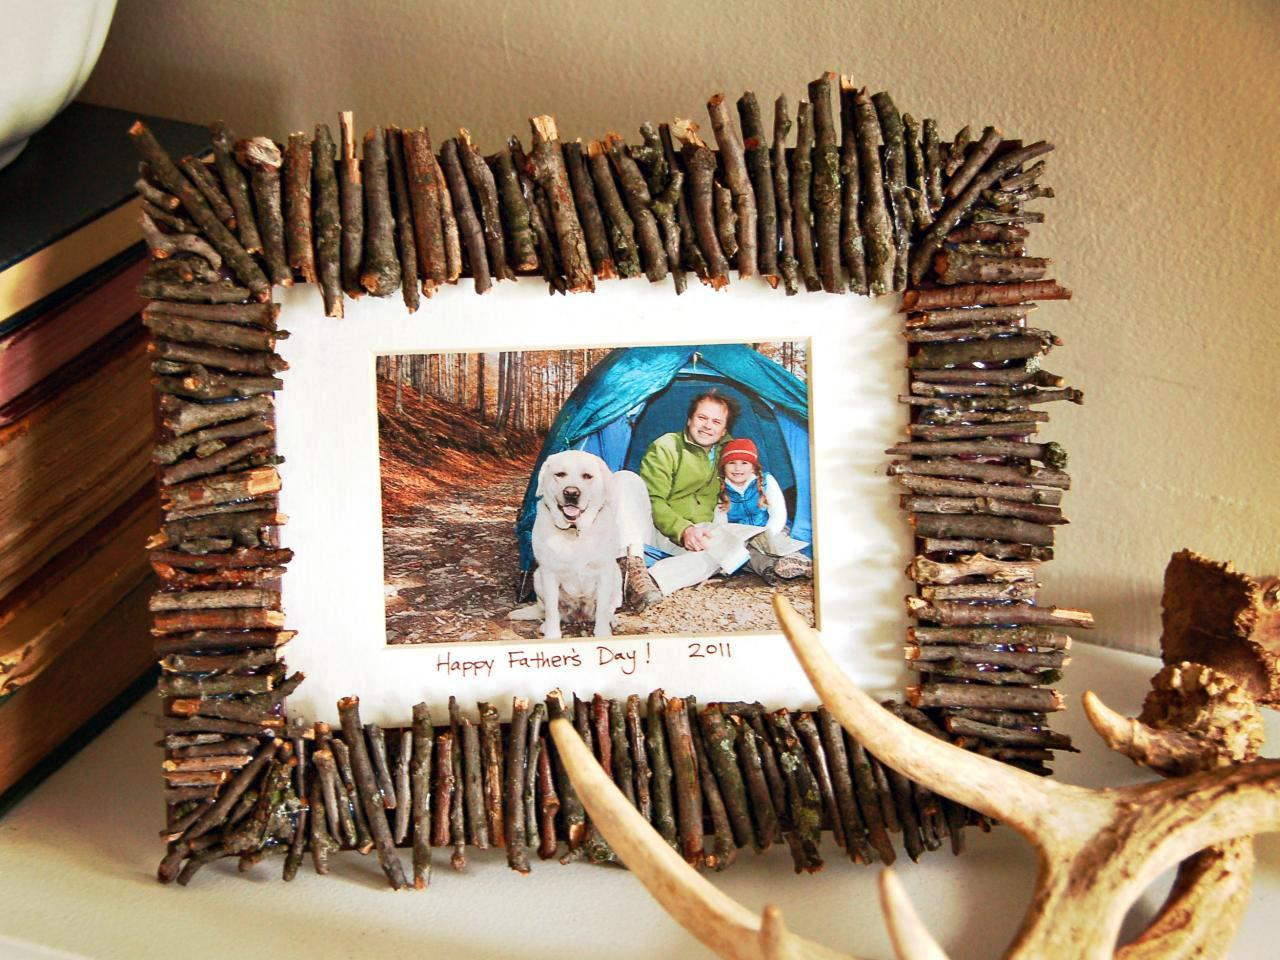 picture frame projects 25 handmade photo crafts {diy gifts}  picture frame memory wreath – infarrantly  thank you for featuring our box frame there are some great projects here.